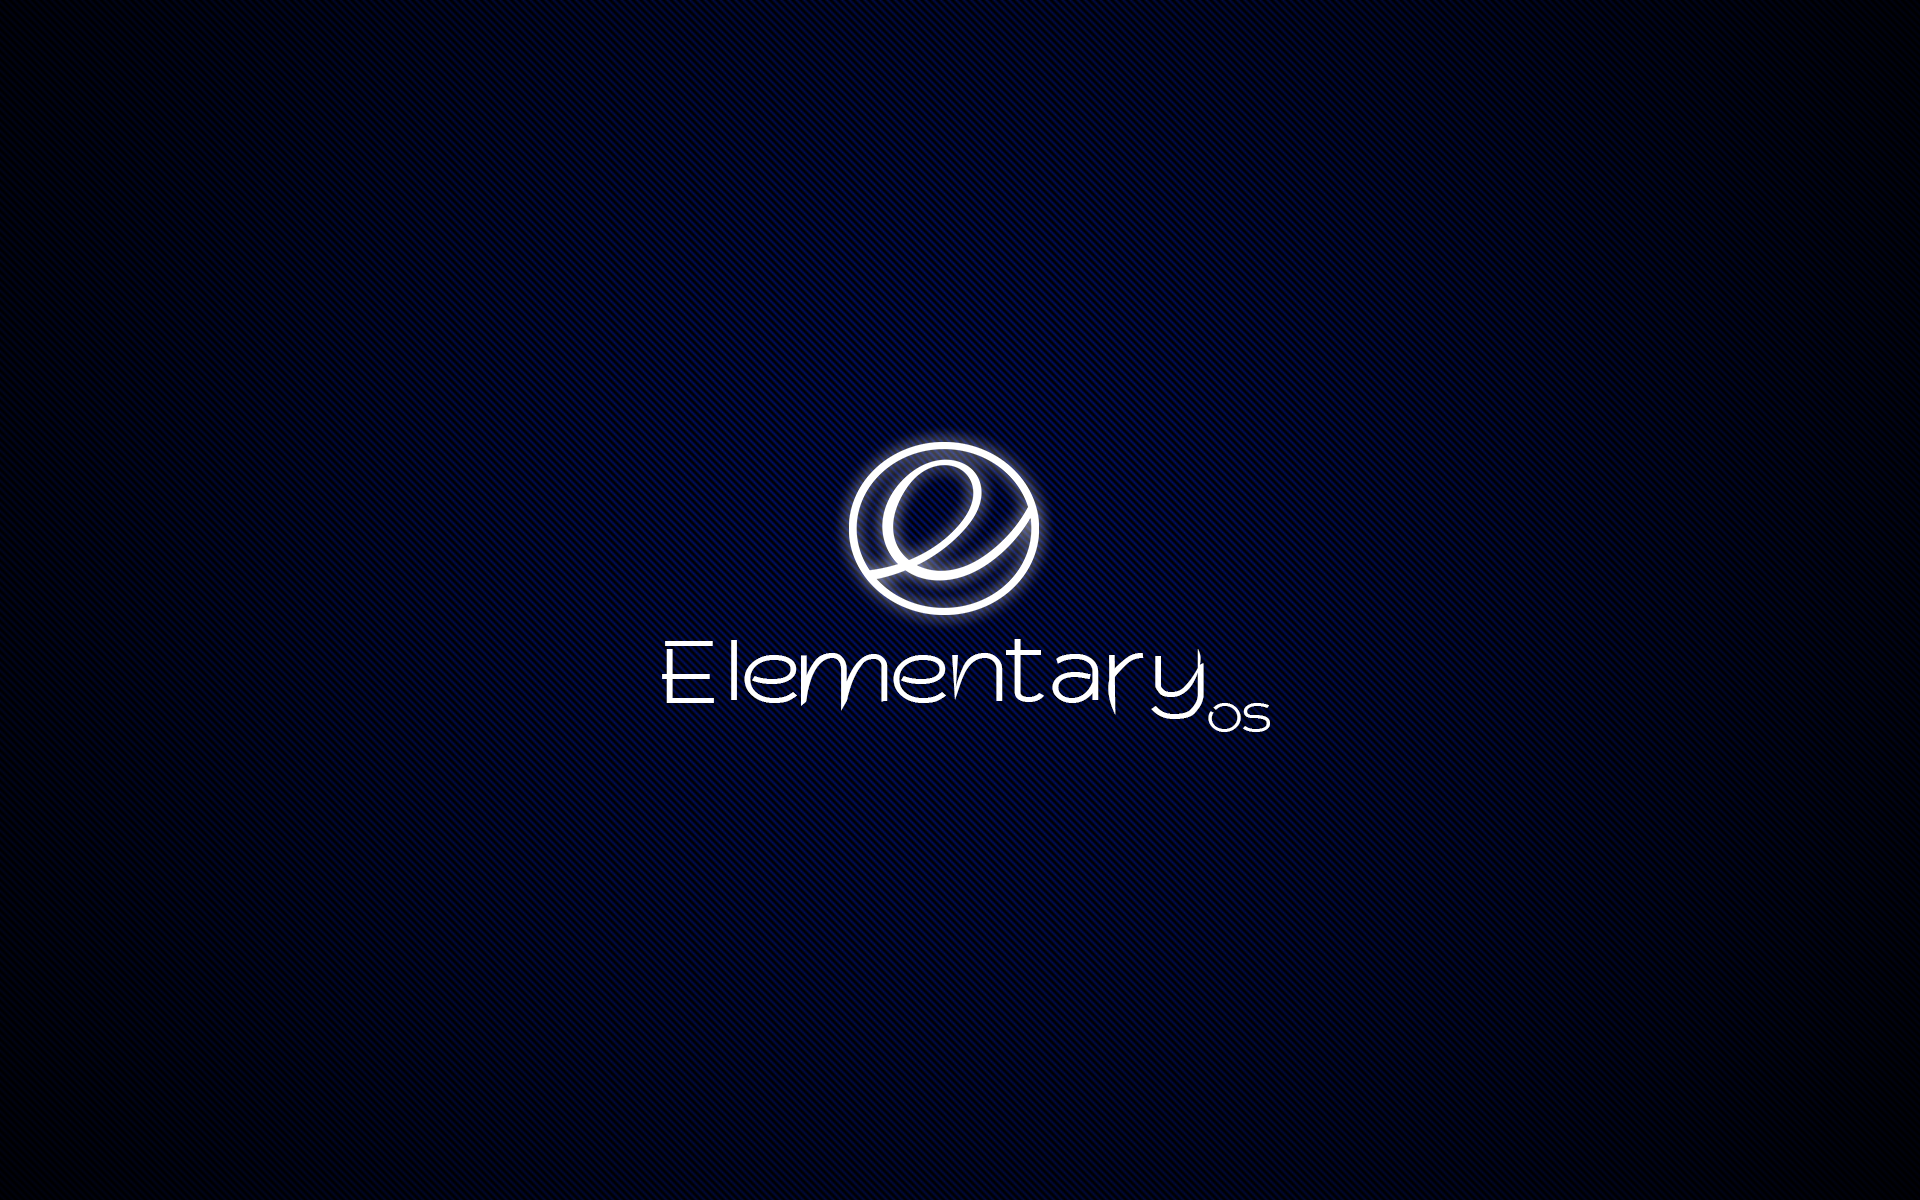 Elementary Os Wallpapers Release date Specs Review Redesign and 1920x1200